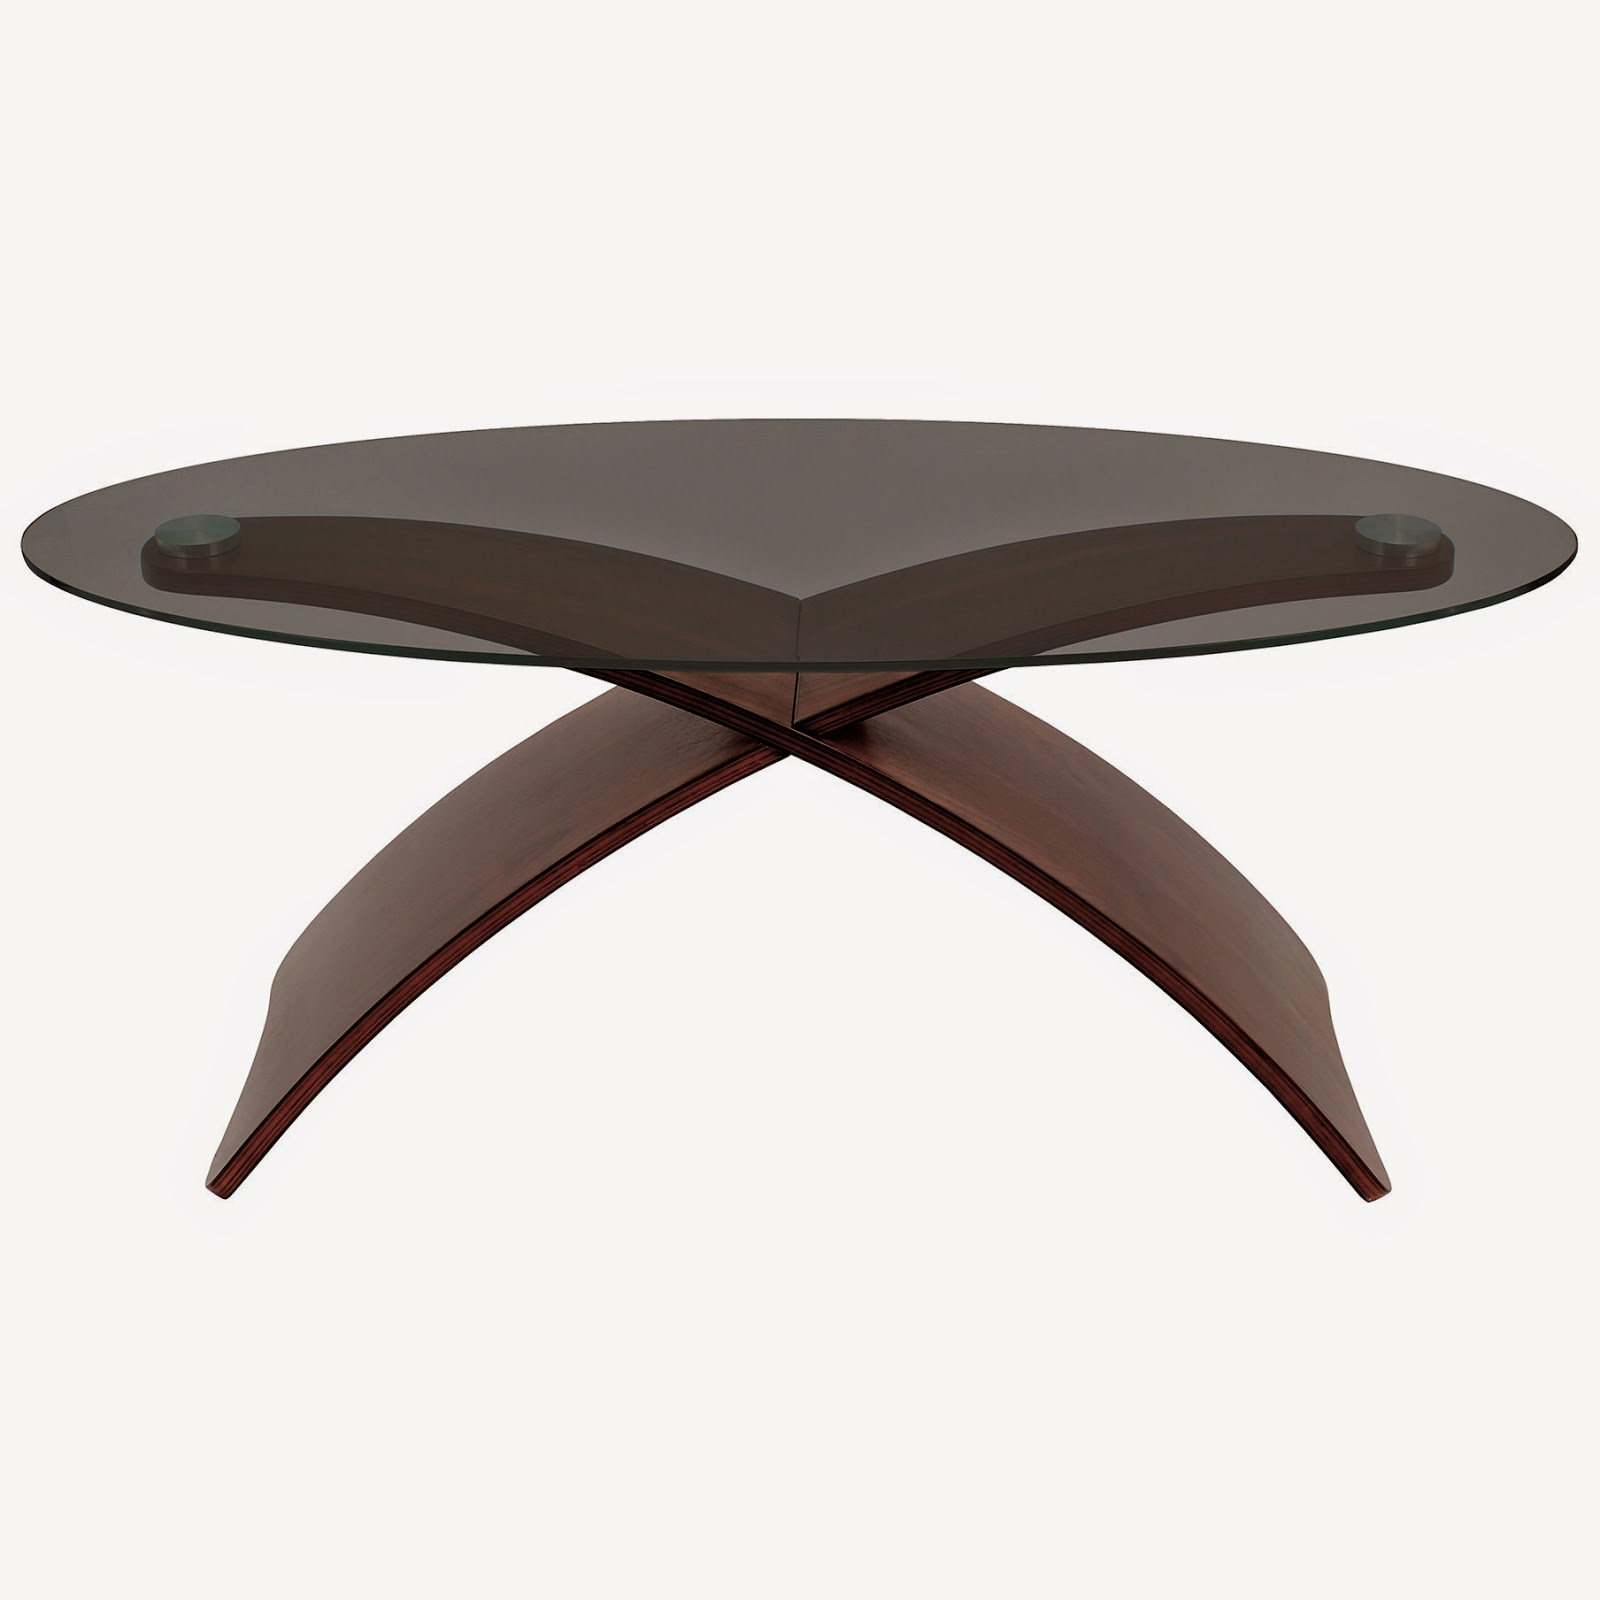 25 elegant oval coffee table designs made of glass and wood for Contemporary glass top coffee table